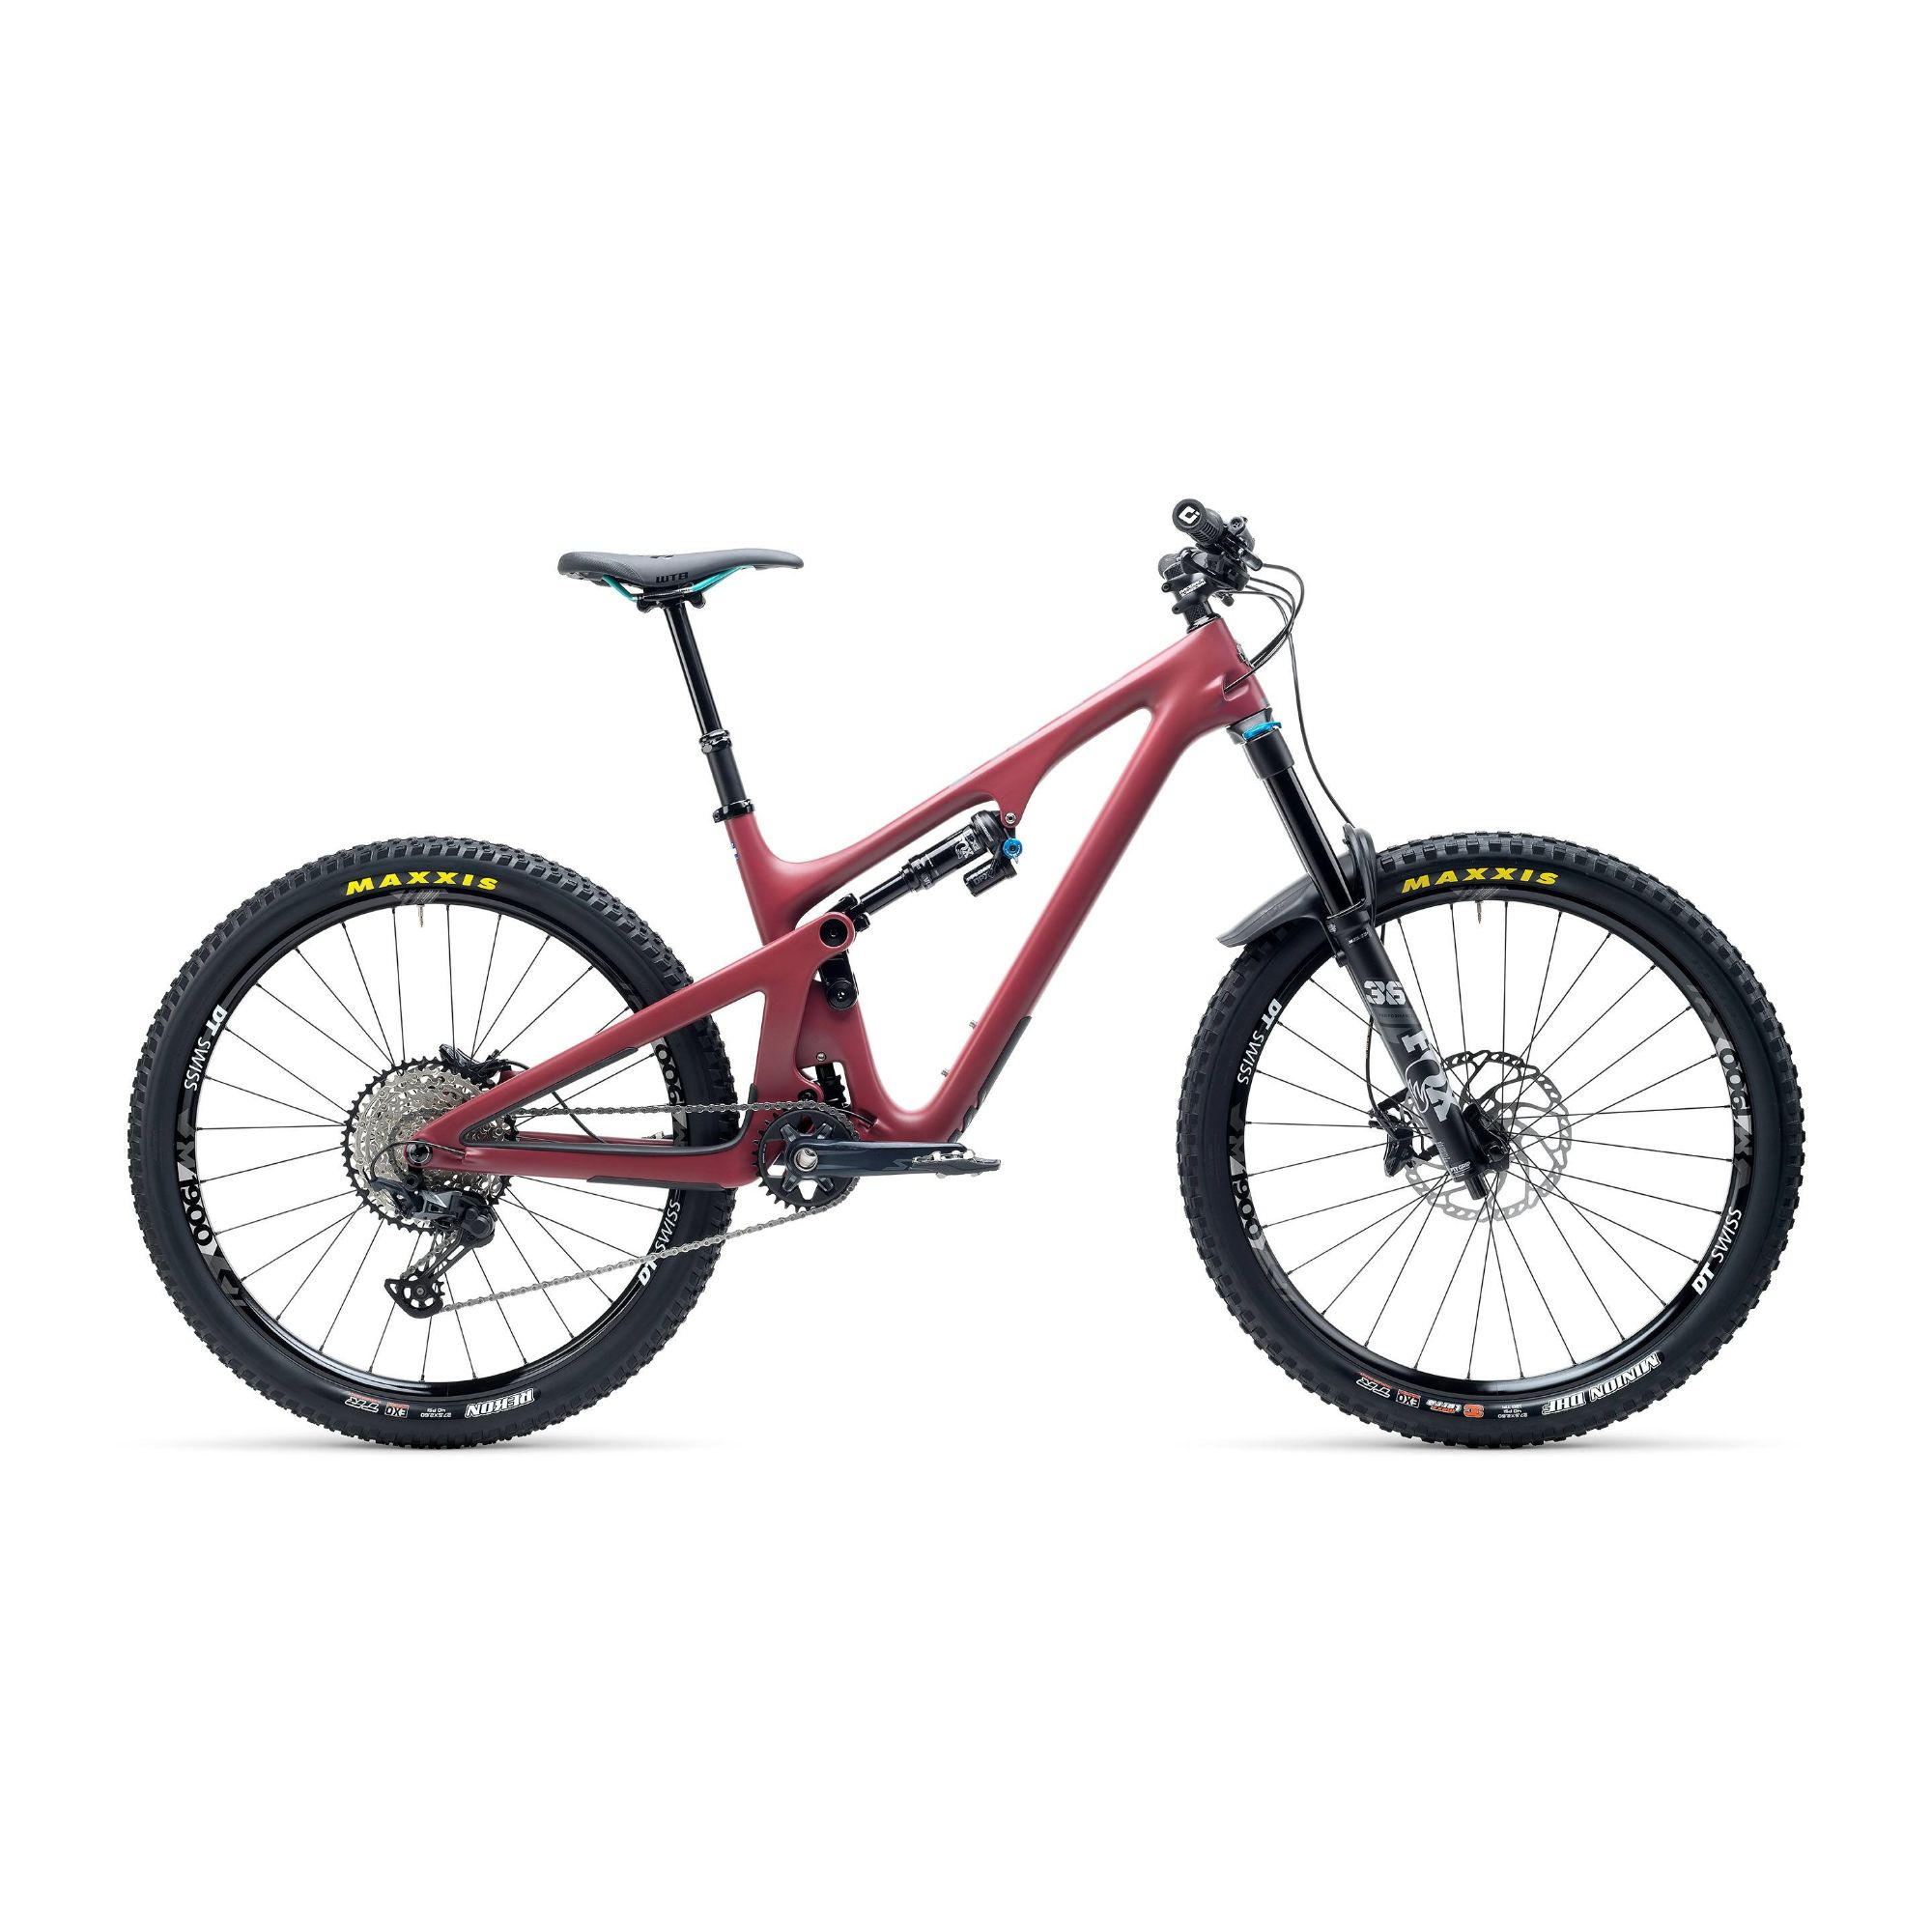 Yeti SB140 C-Series C1 27.5 SLX 12spd Carbon Mountain Bike 2021 Ron